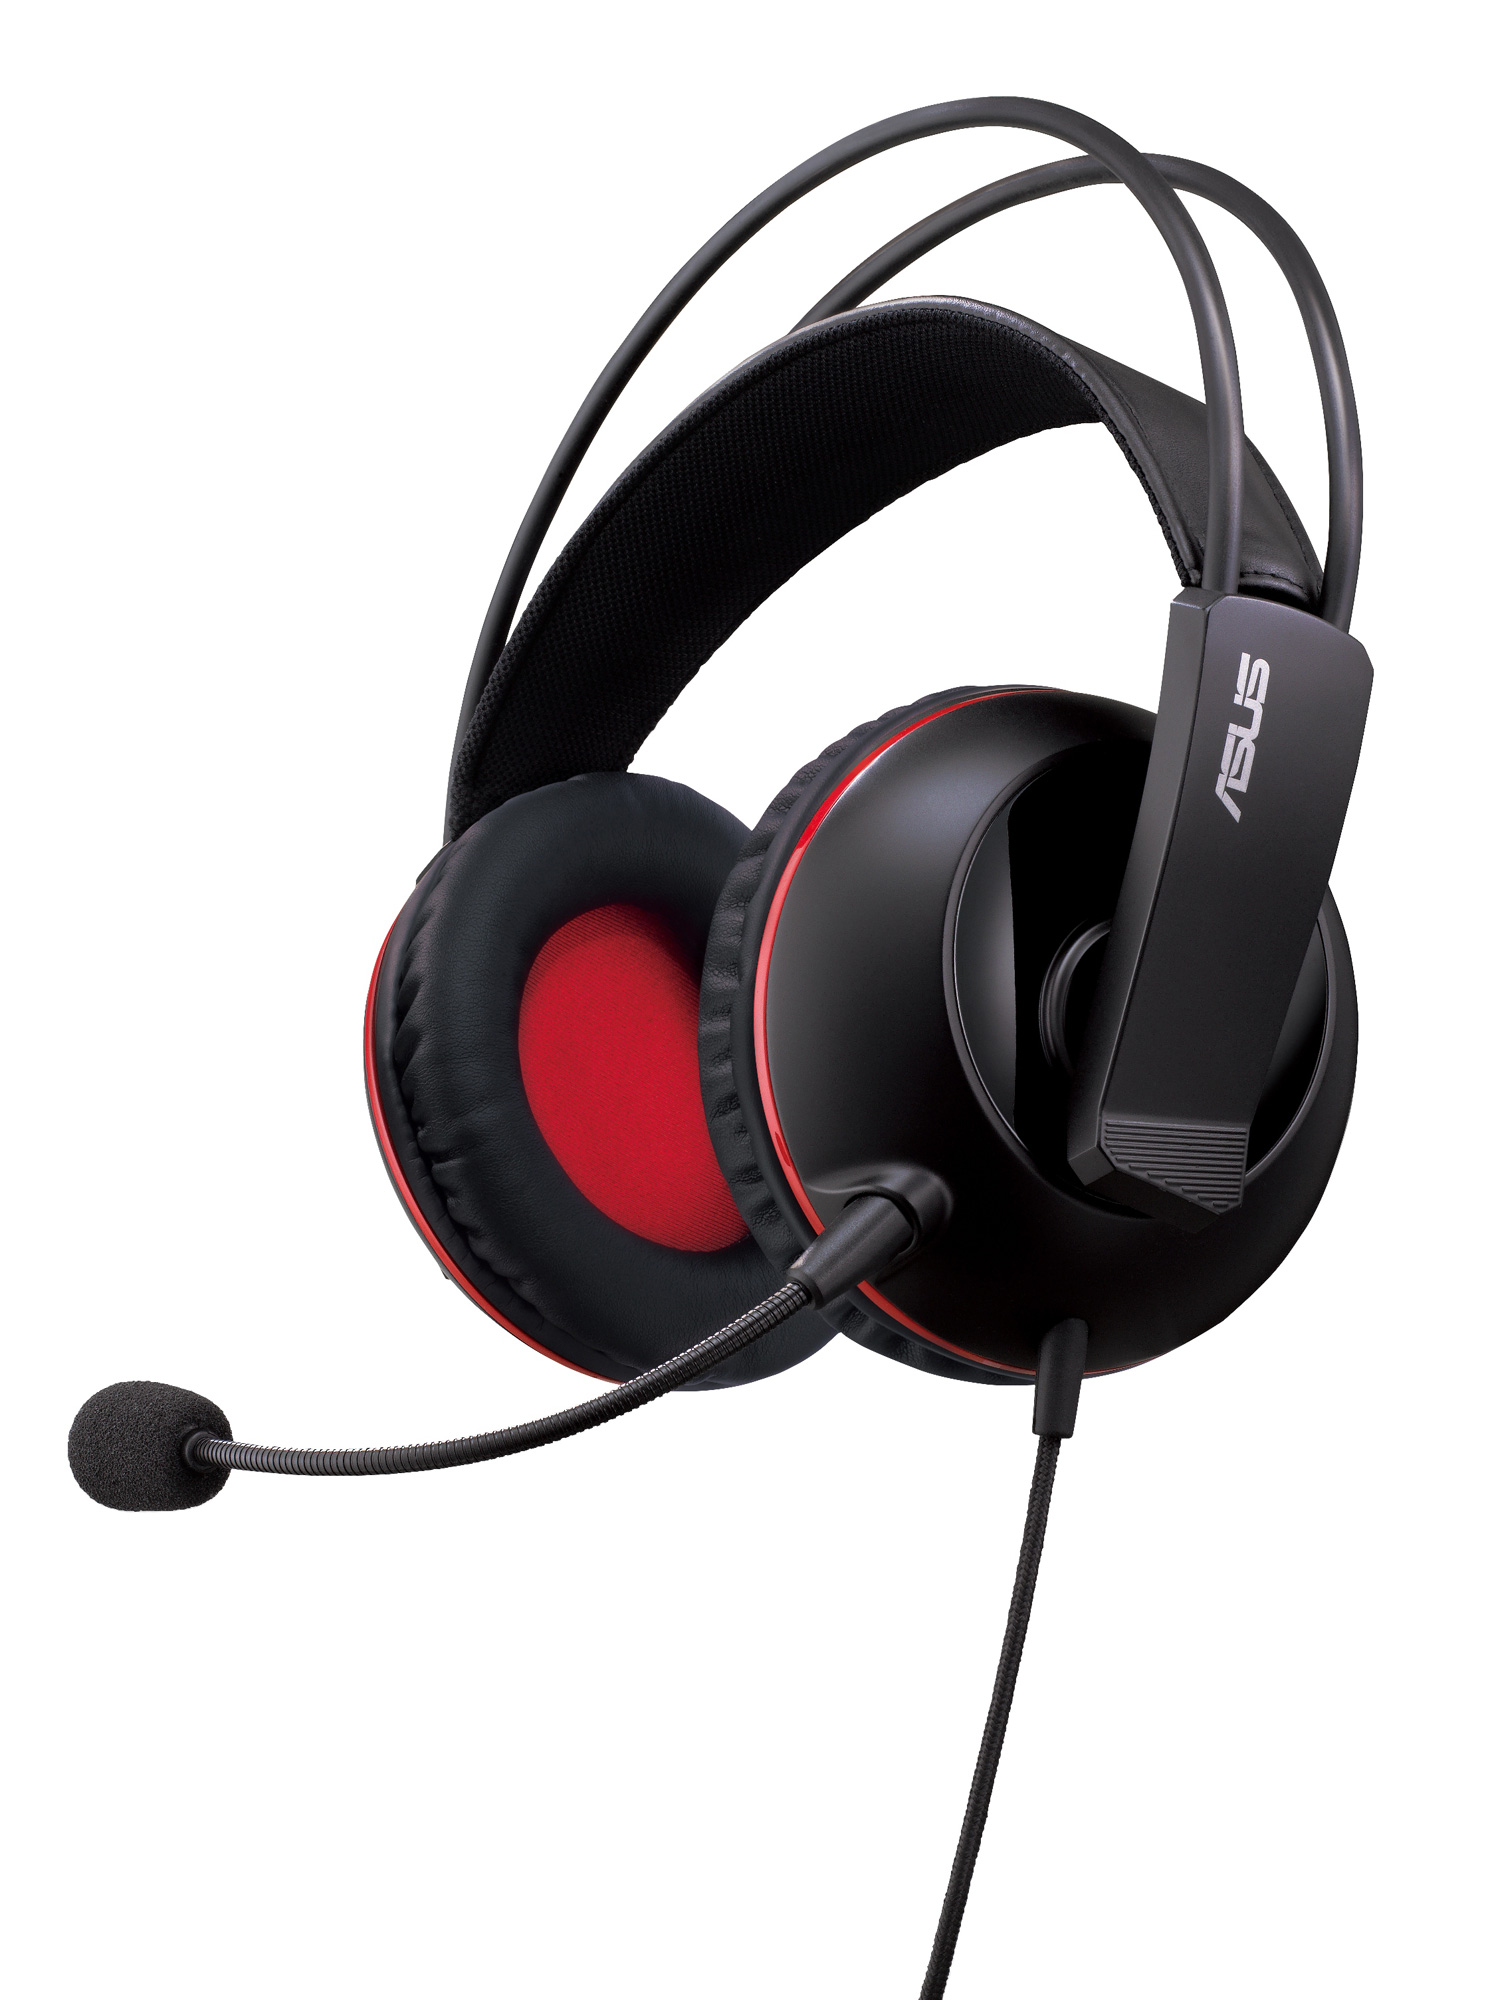 ASUS-Cerberus-gaming-headset